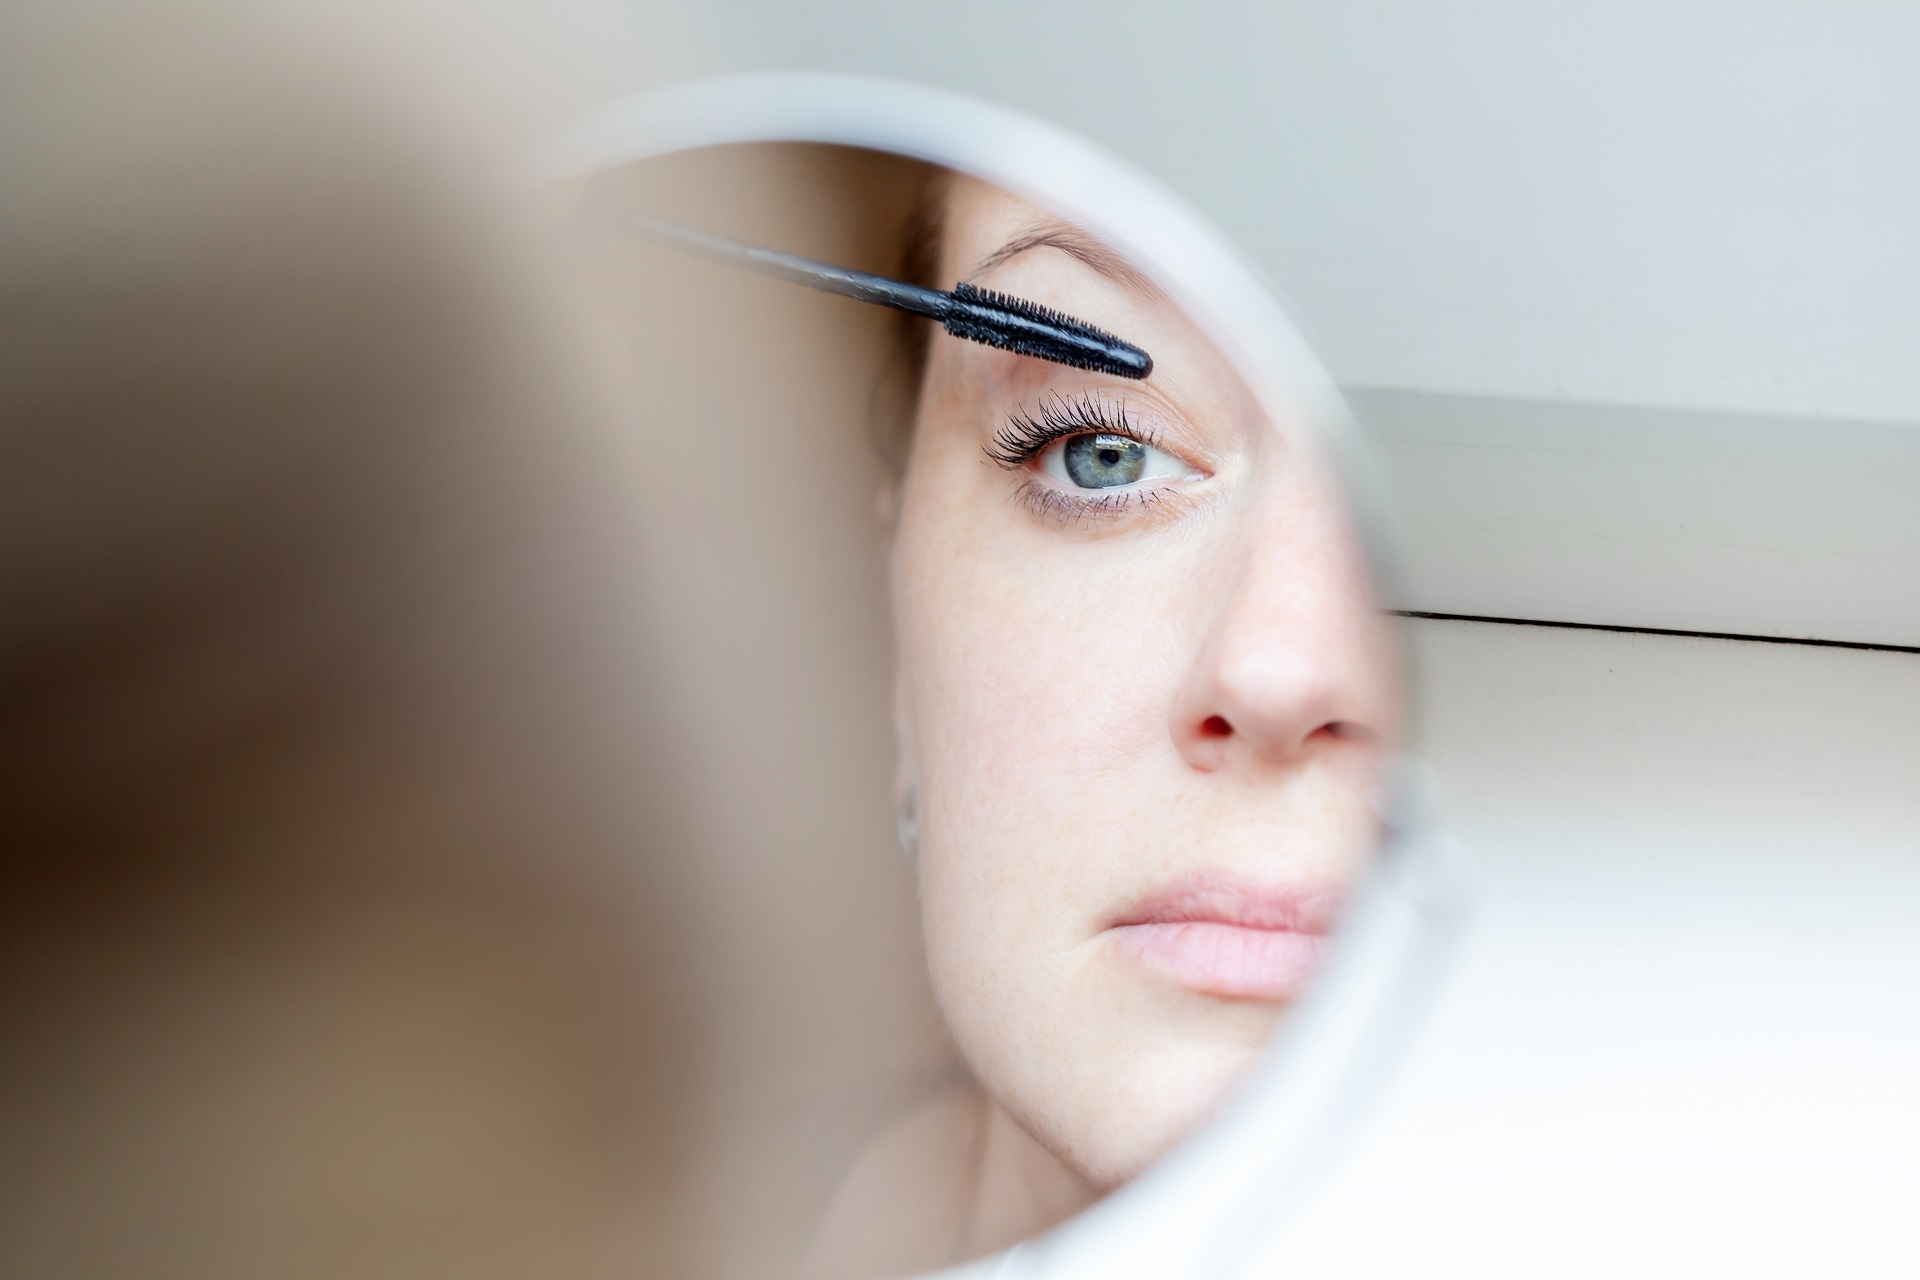 A look in the eye example photo